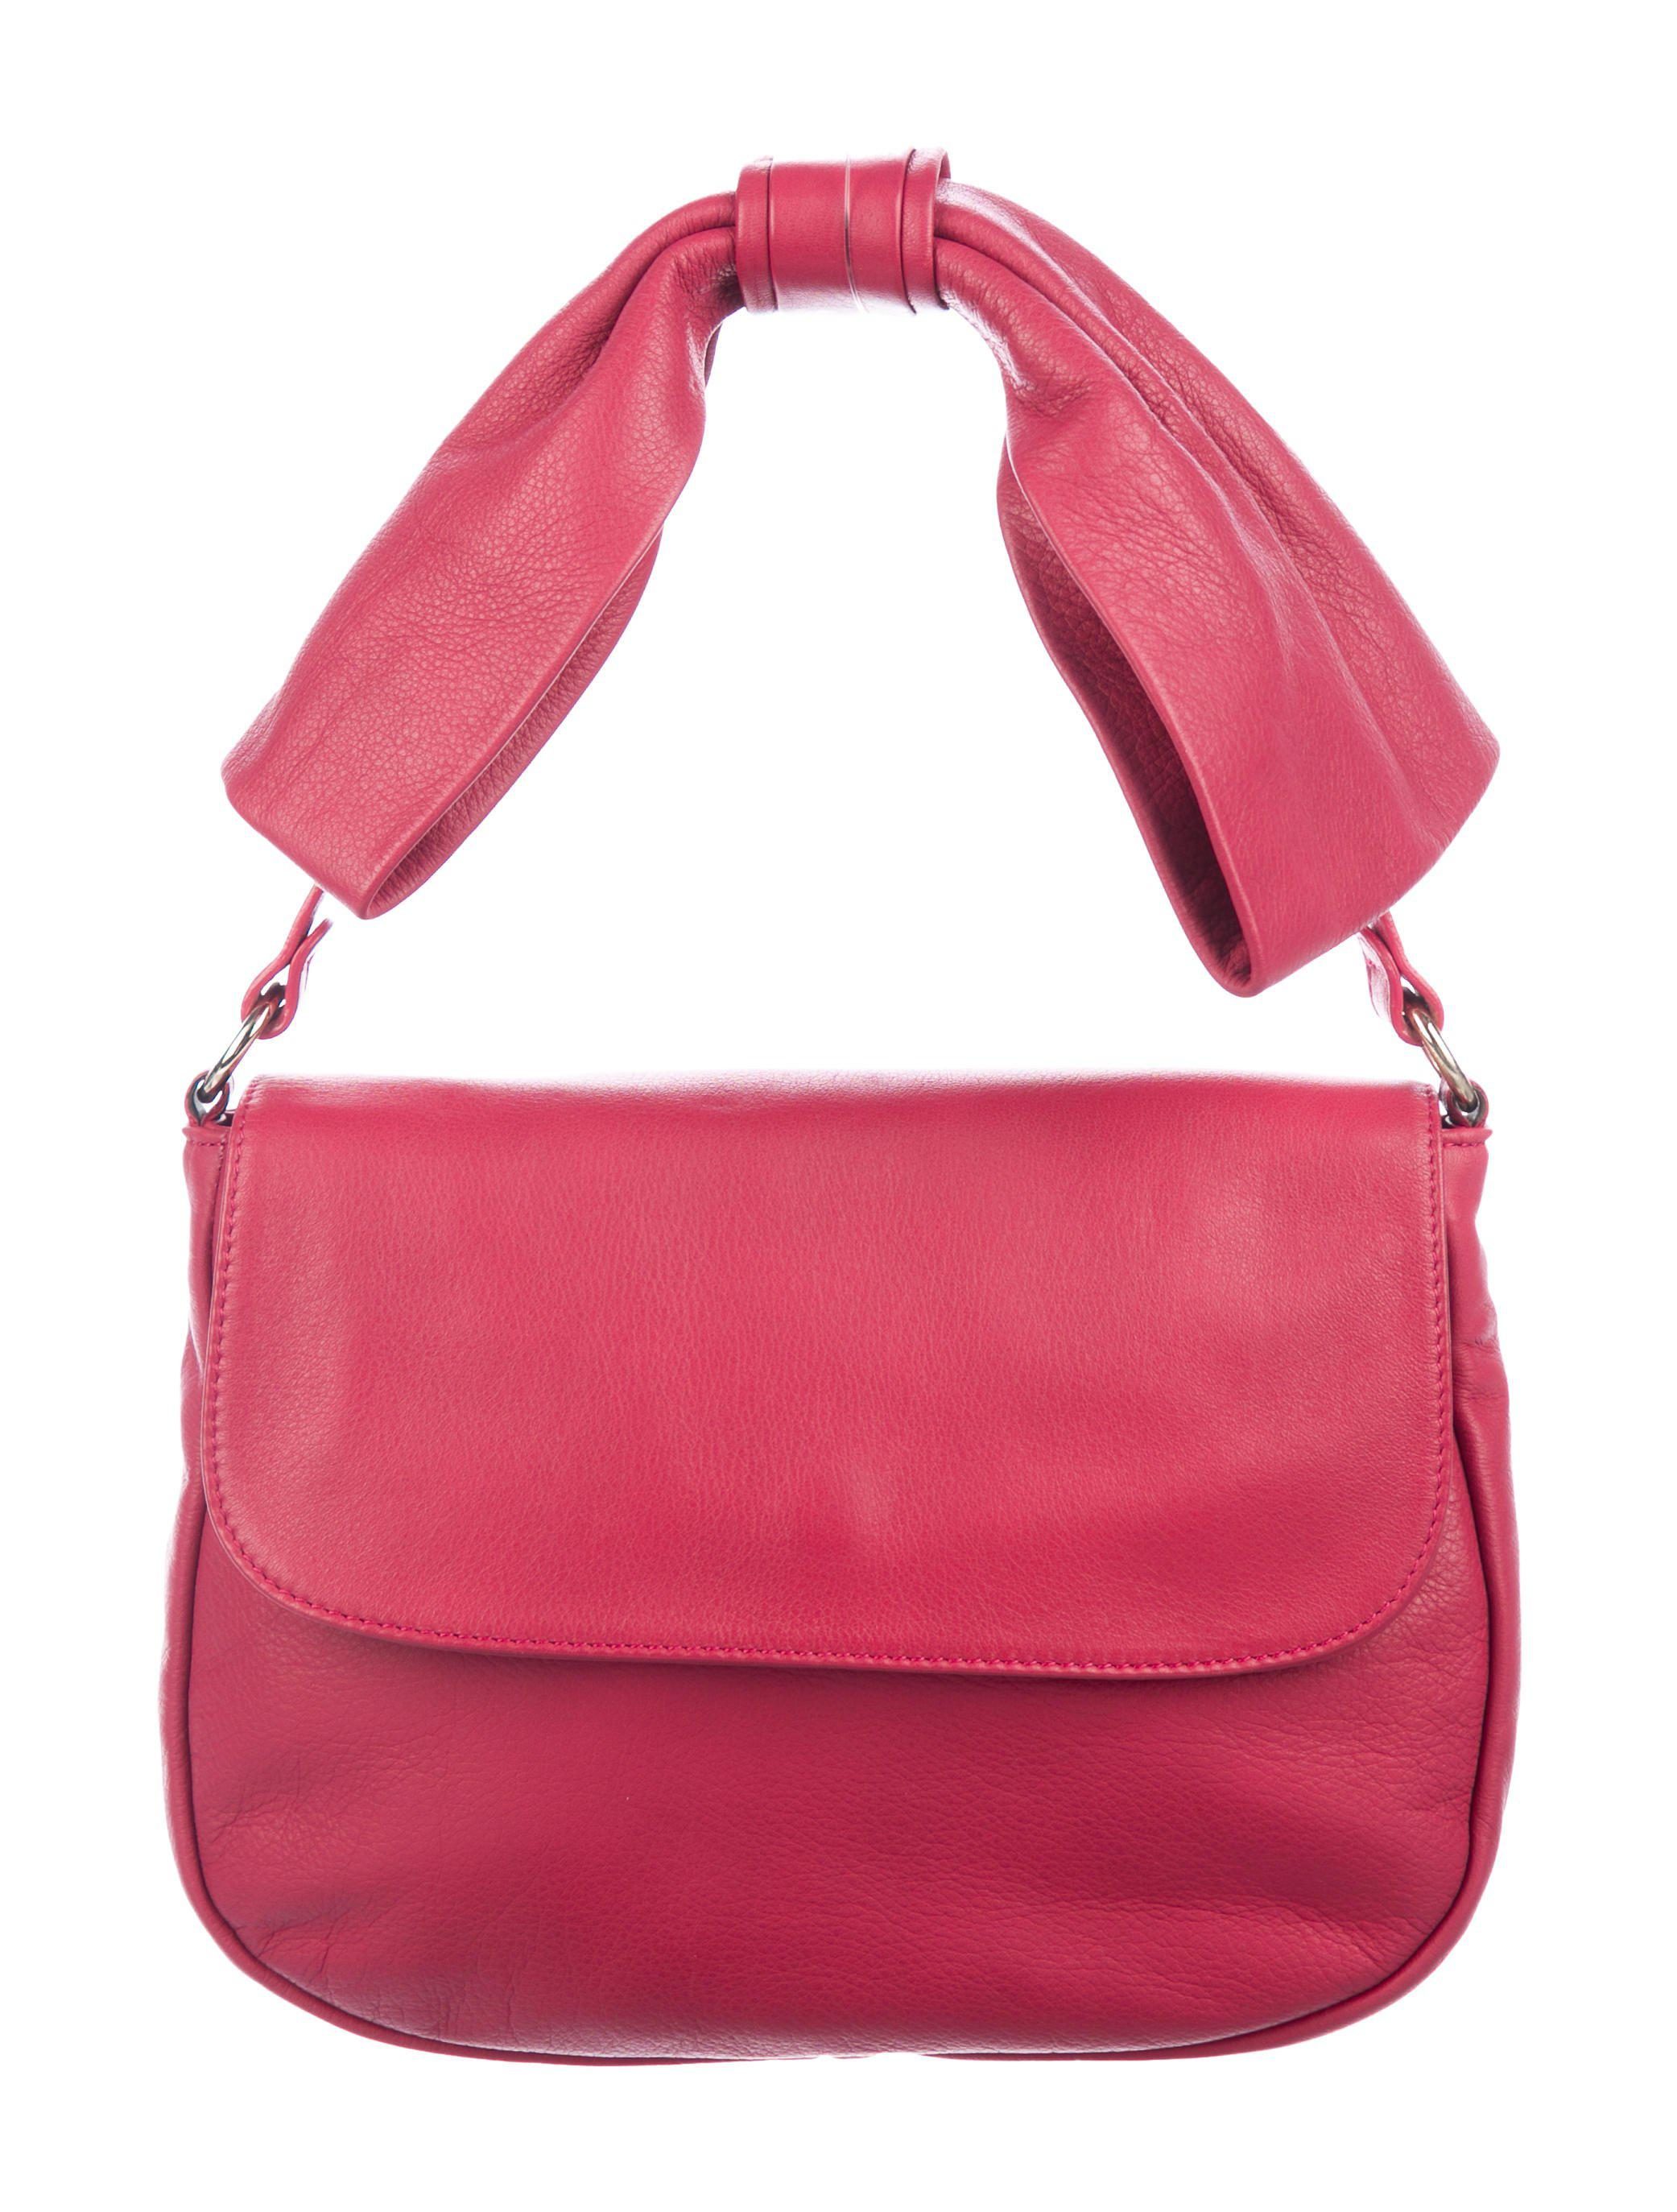 89b4849c796e Lyst - Red Valentino Leather Bow Flap Bag in Metallic